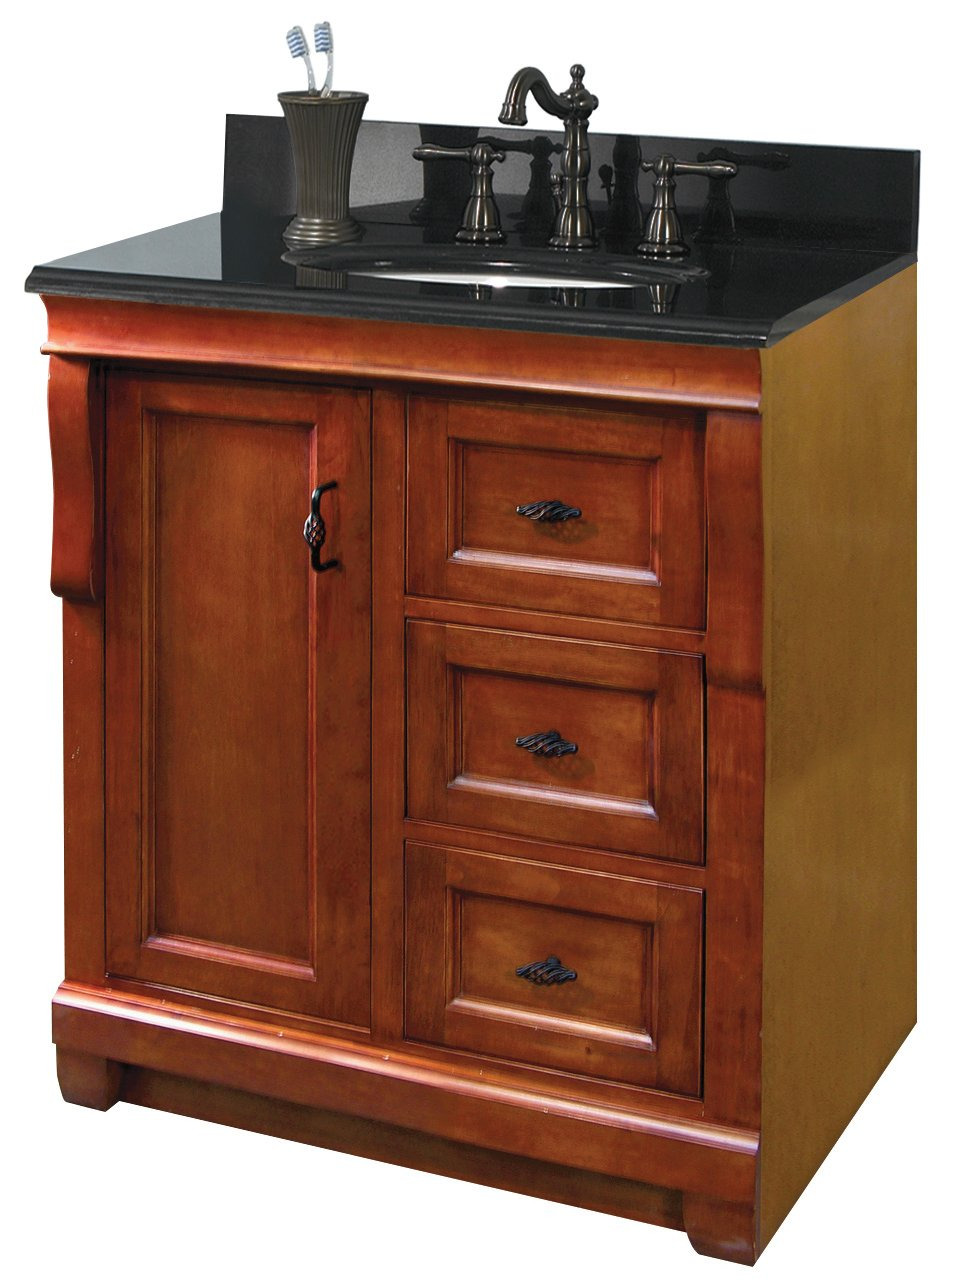 30 inch bathroom vanities 30 inch bathroom vanities at for Bathroom 30 inch vanity